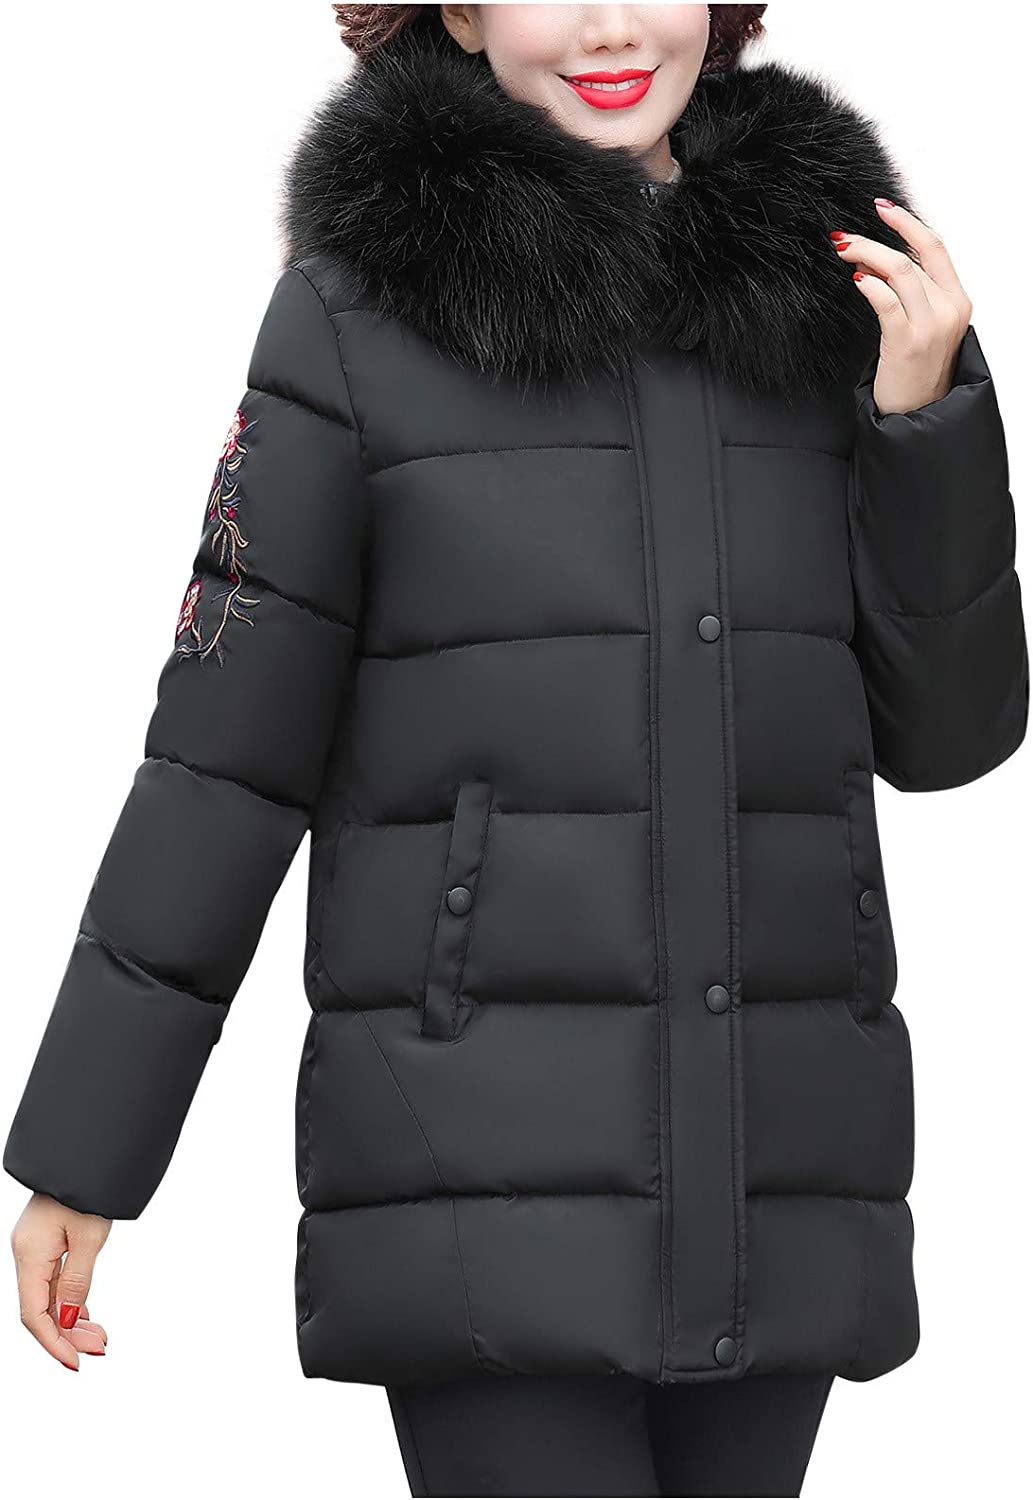 Giulot Winter quilted jacket for women Parka with Faux Fur Embroidery Lightweight and Soft Long Hooded Jacket Puffer Coat